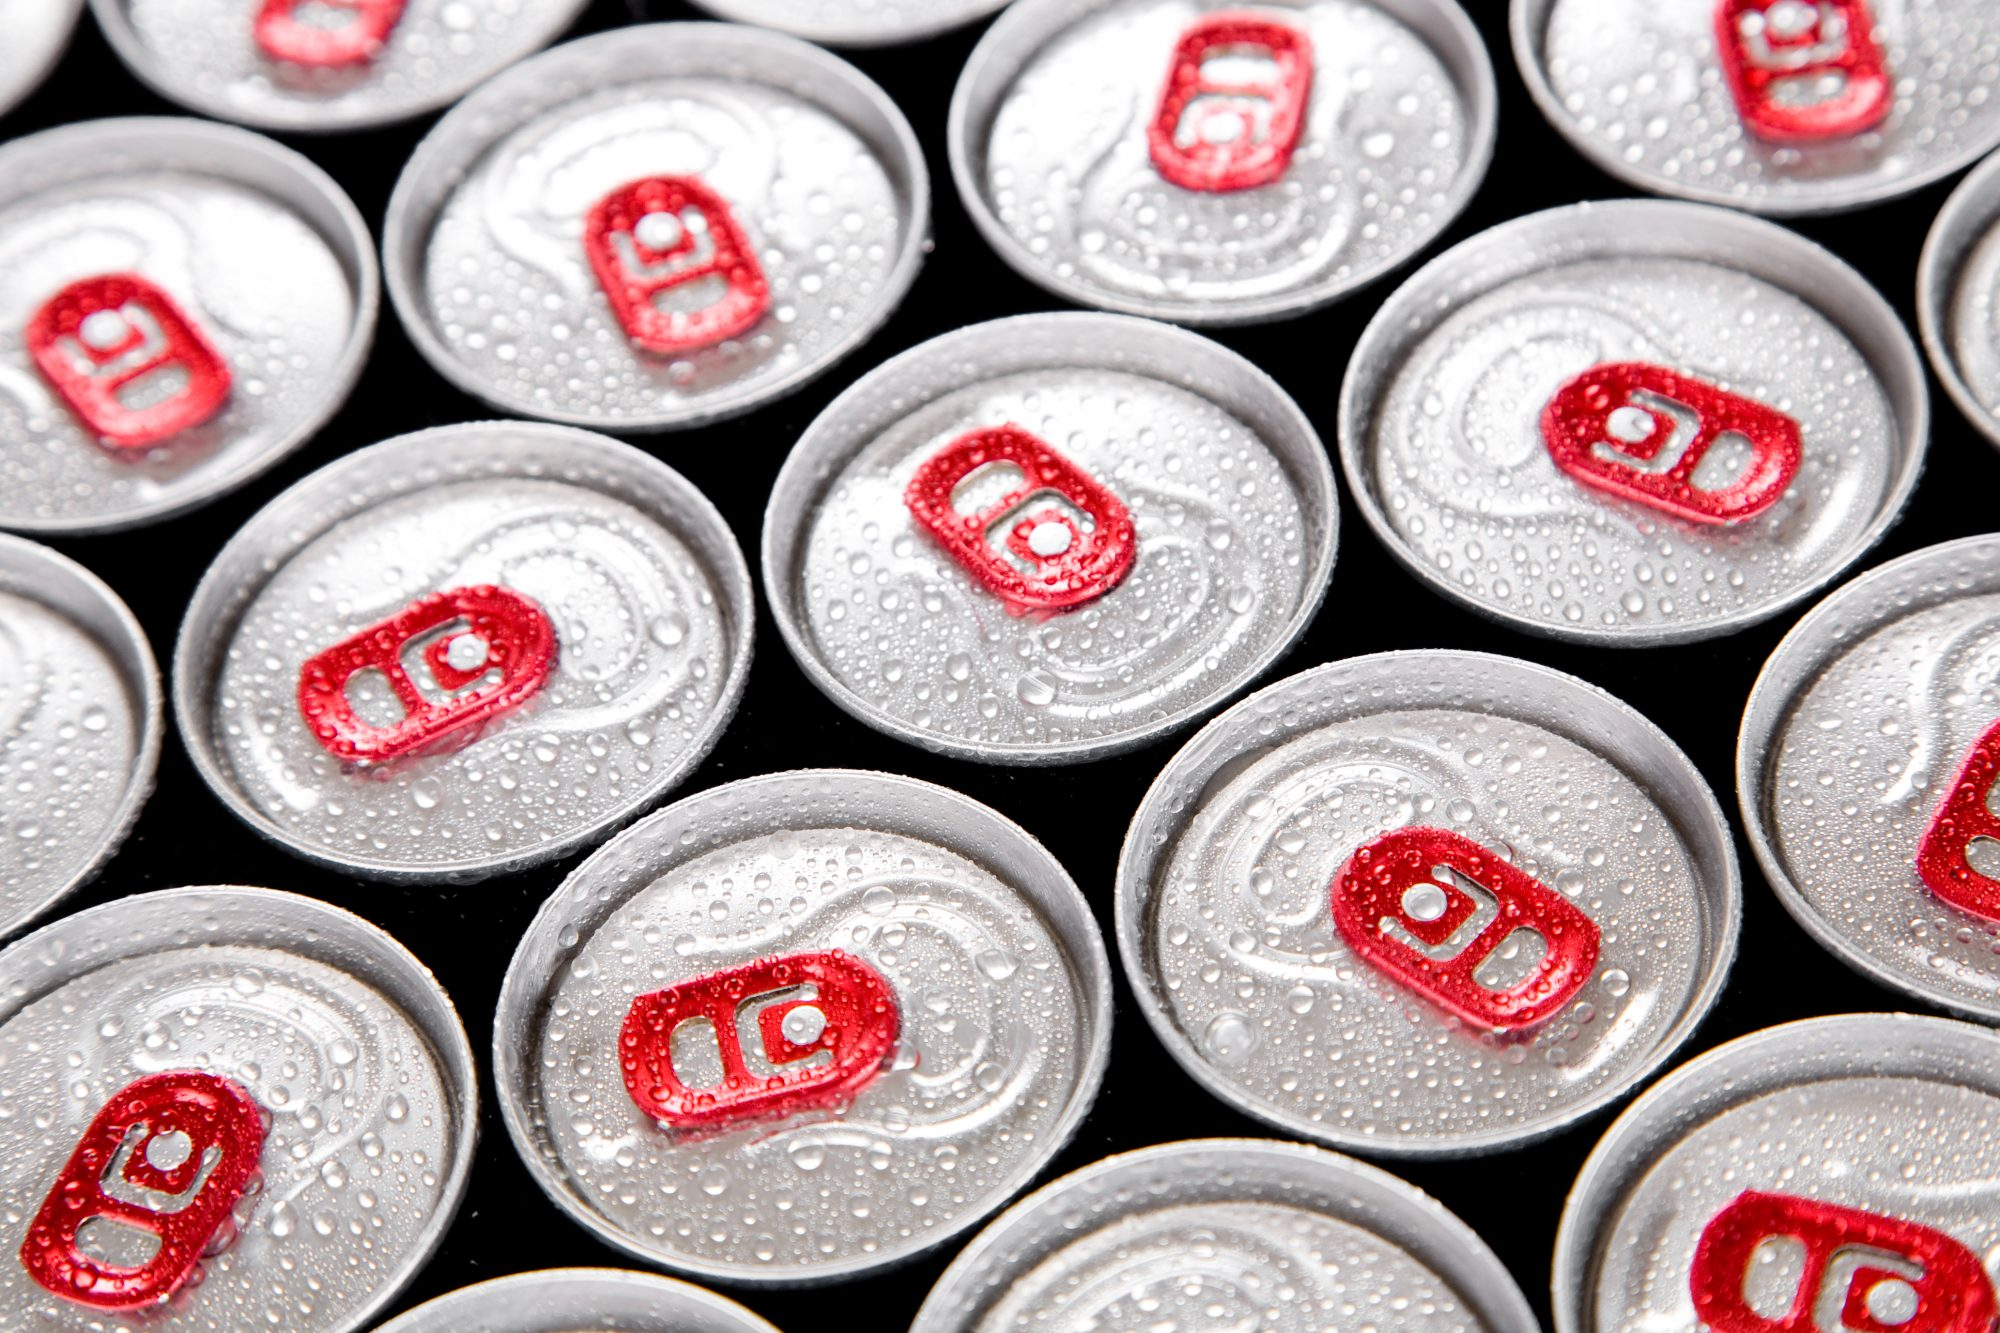 Energy Drinks Are Bad for Your Heart, Says Study